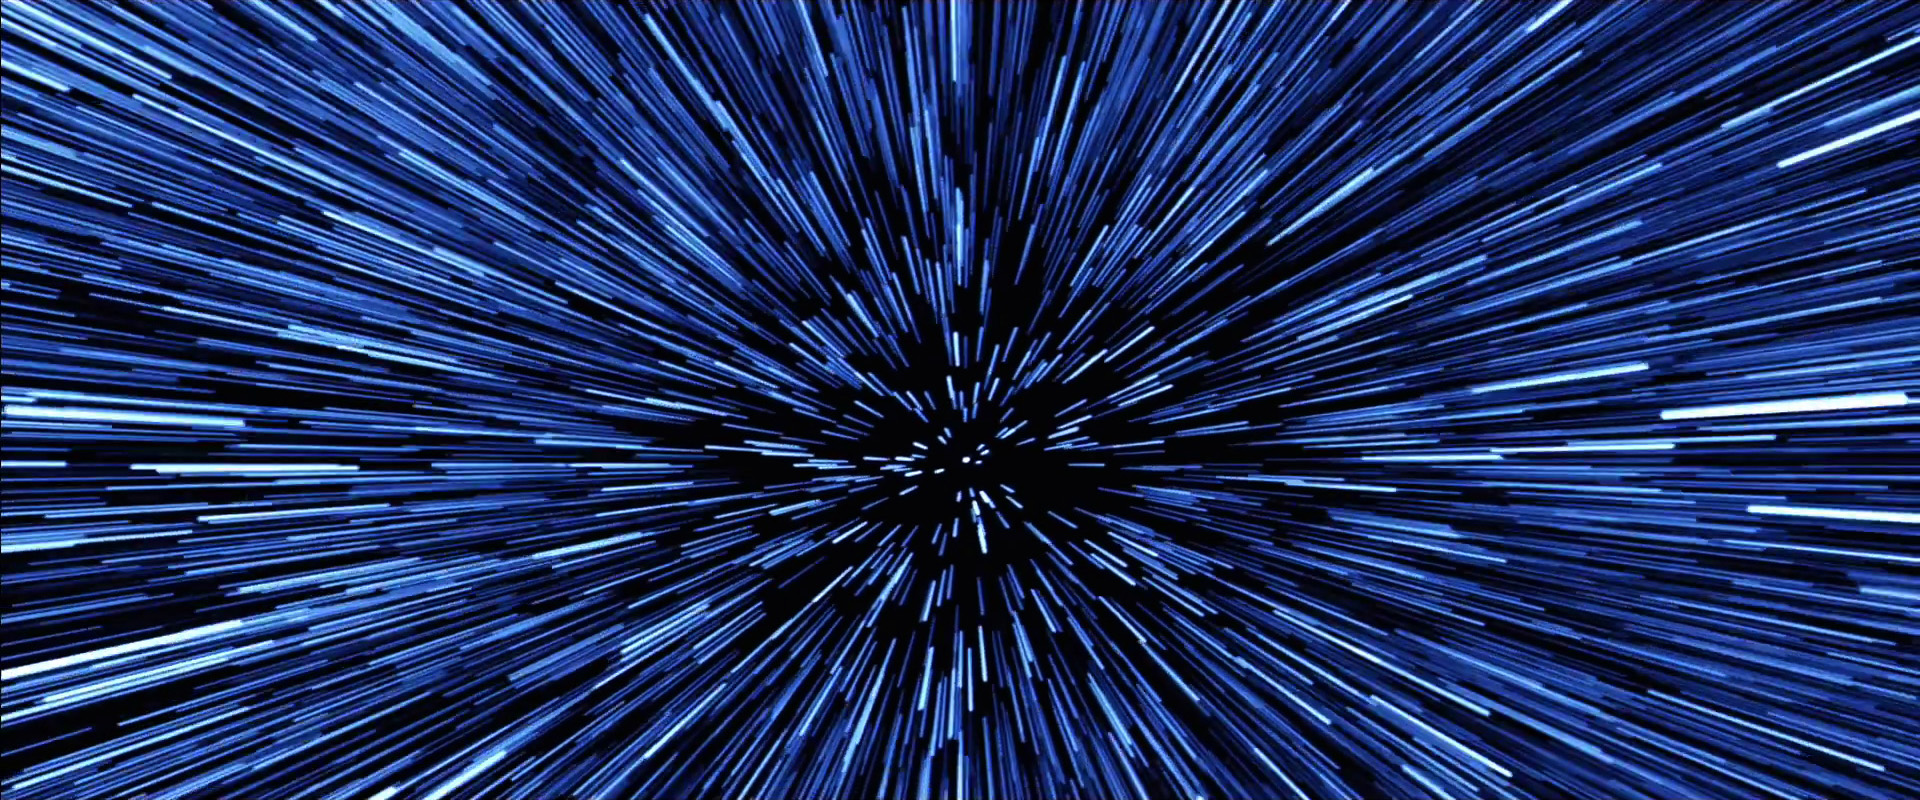 Hyperspace 3d Wallpaper Analysis Of Full Star Wars The Force Awakens Trailer With